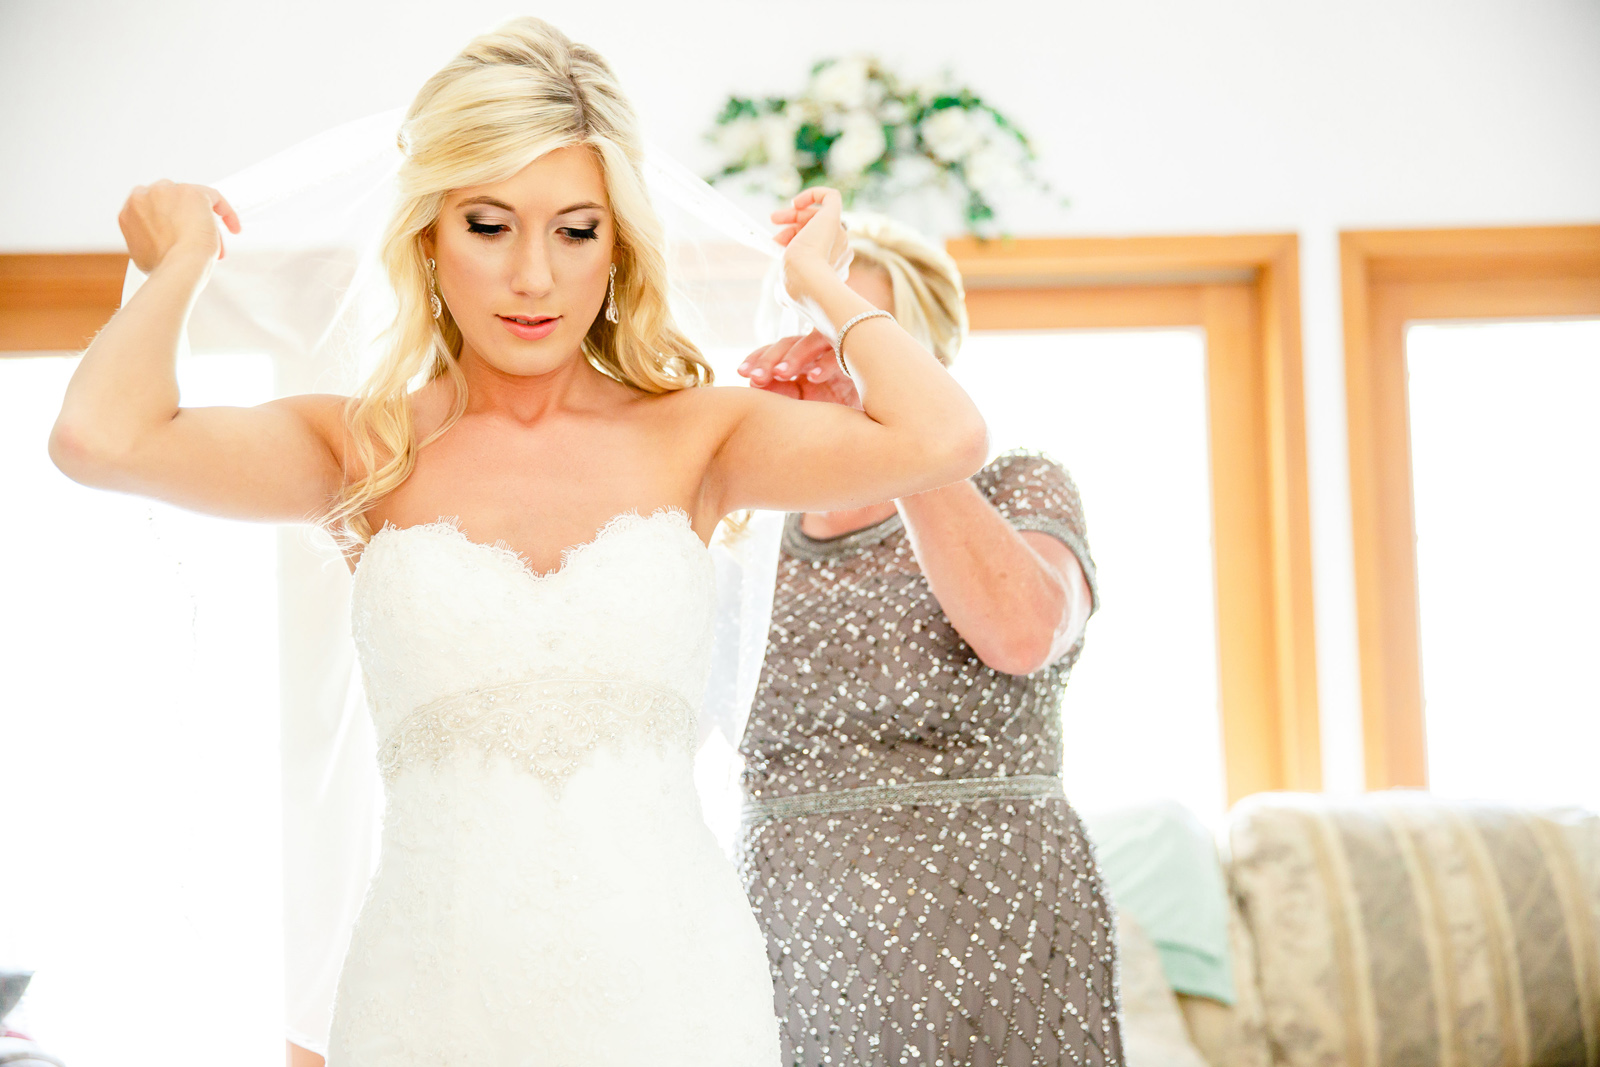 Millstadt Bride and Bridal Party Getting Ready Photos with St. Louis Wedding Photographers by Oldani Photography 11.jpg